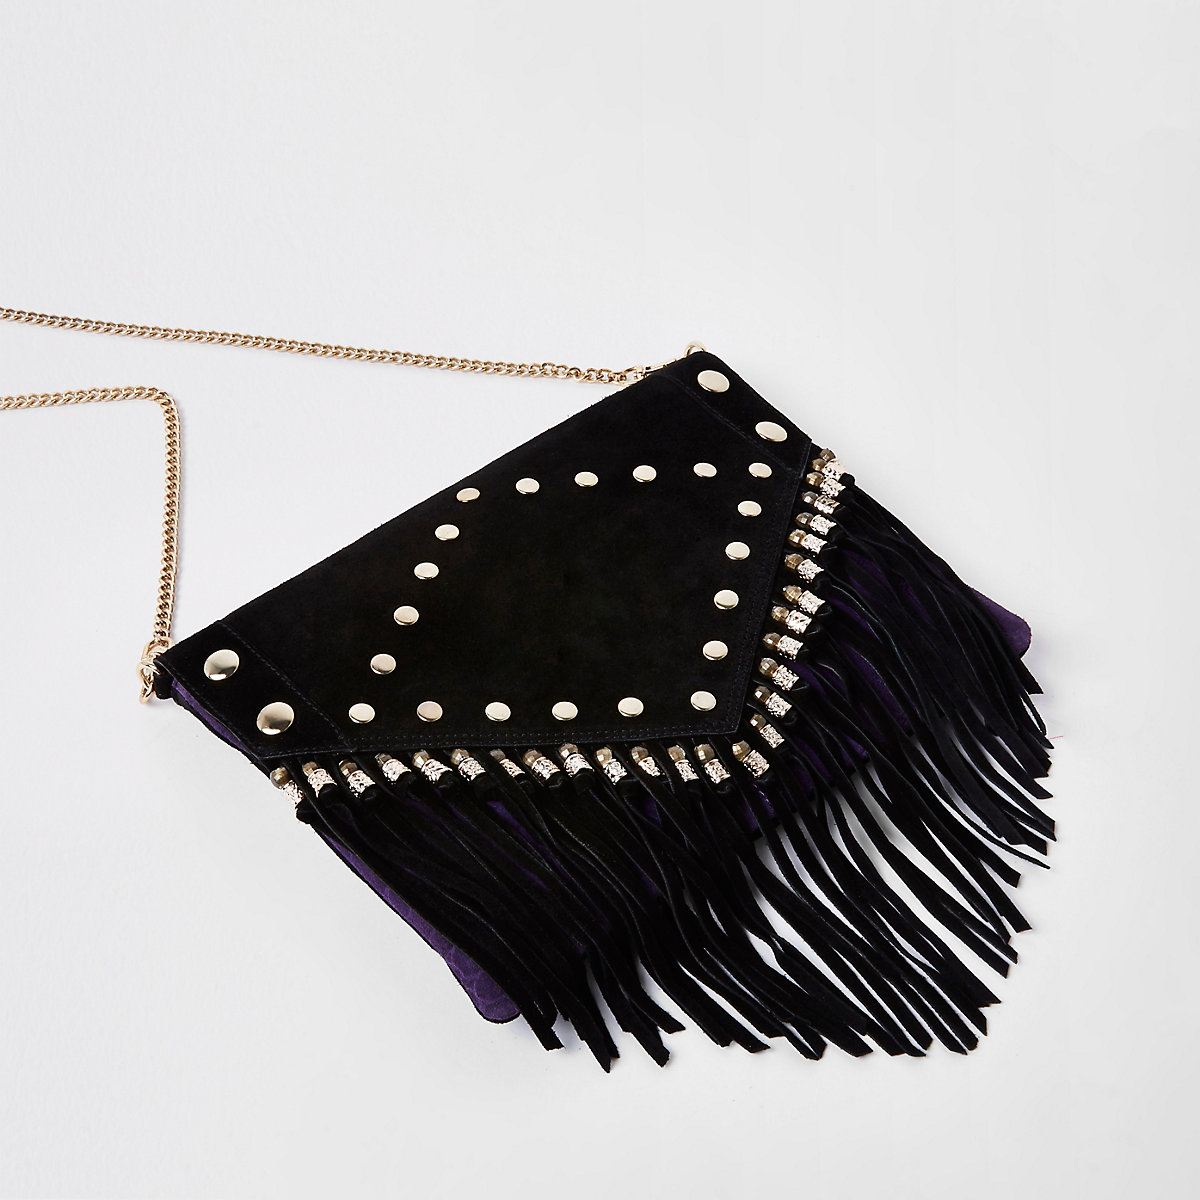 Black leather stud and tassel clutch bag